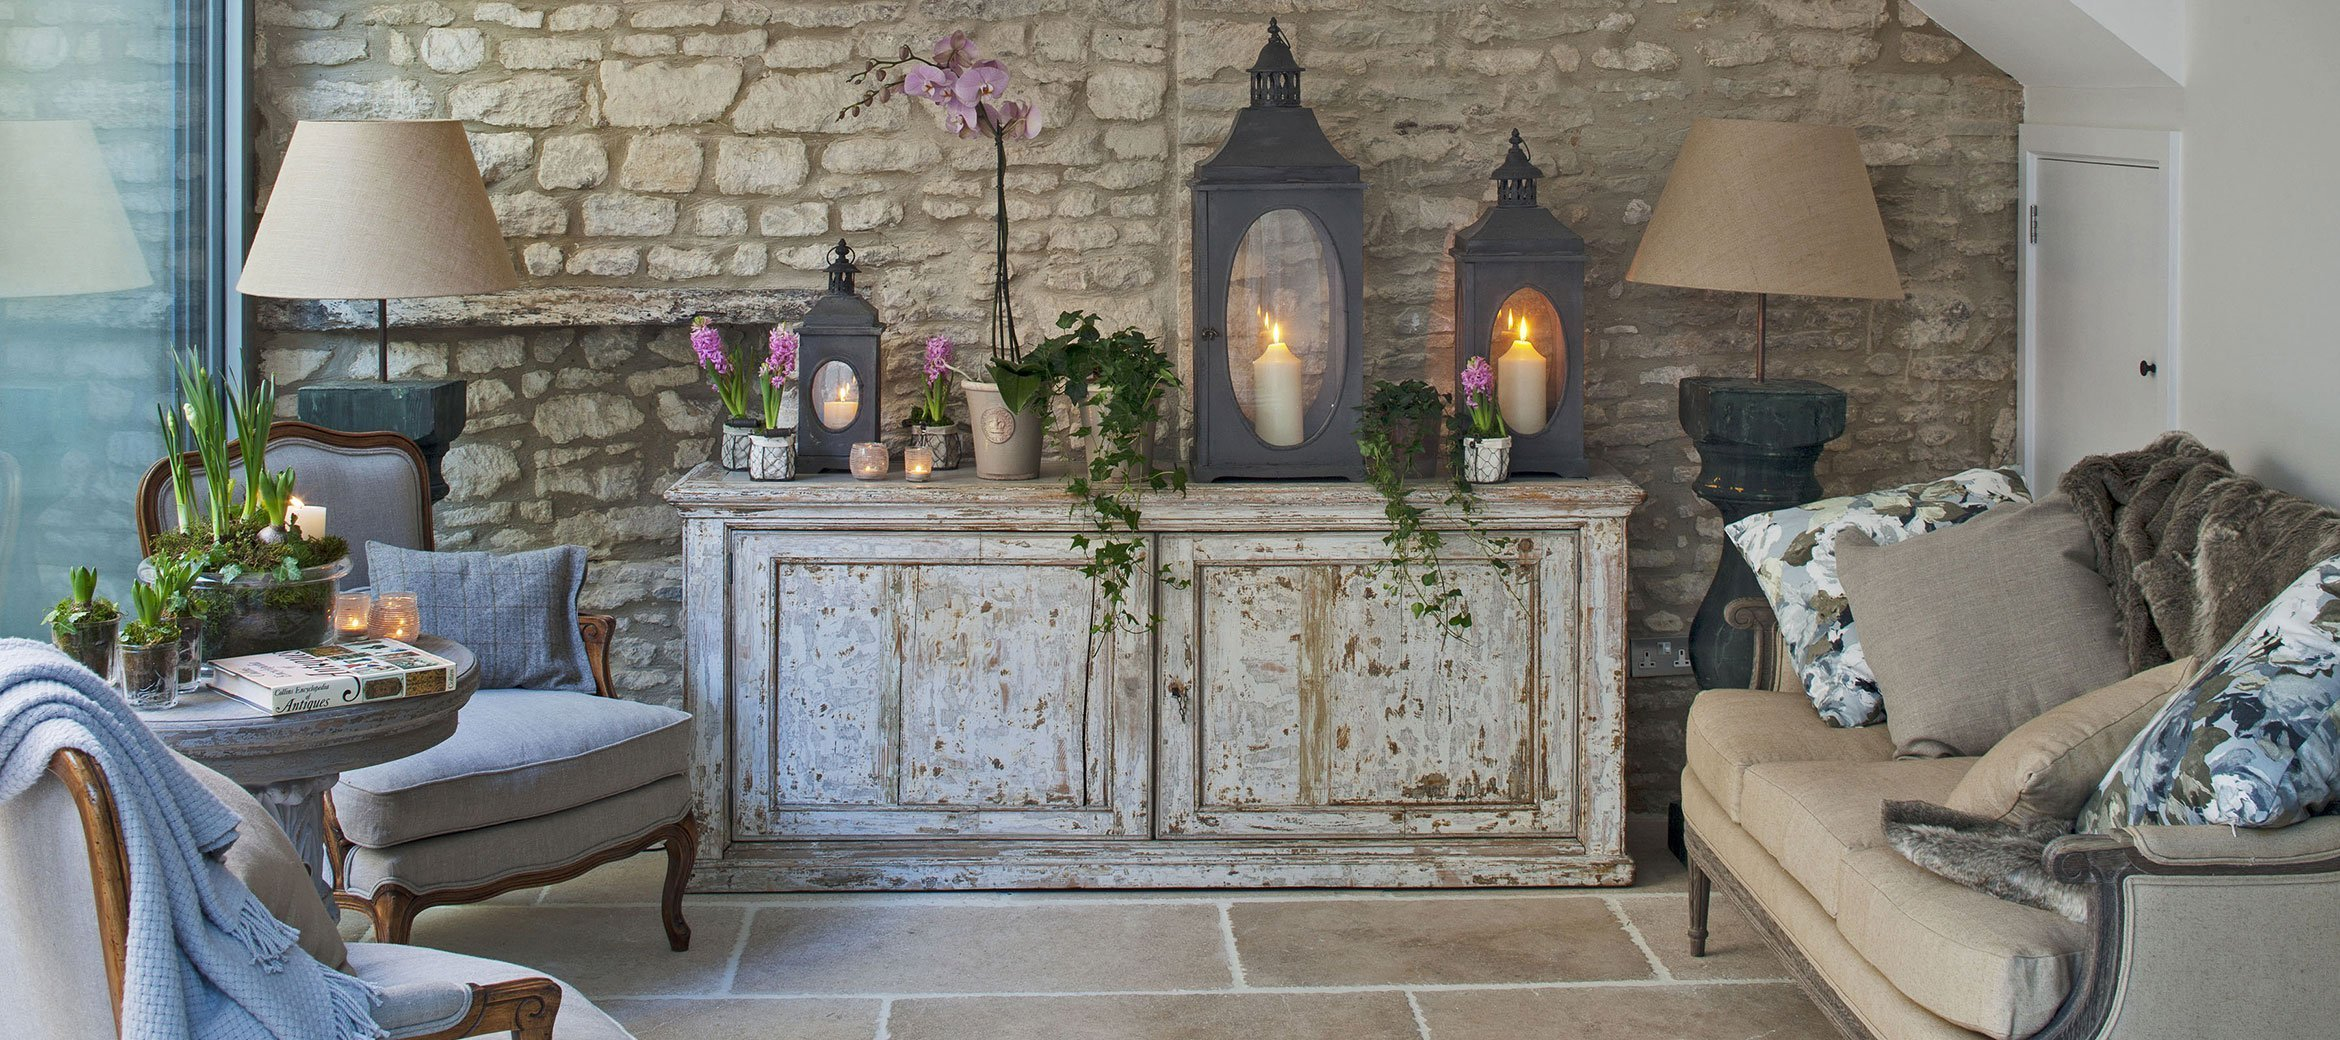 Stunning Cotswold Cottage Living Room Full Home Tour over on Modern Country Style